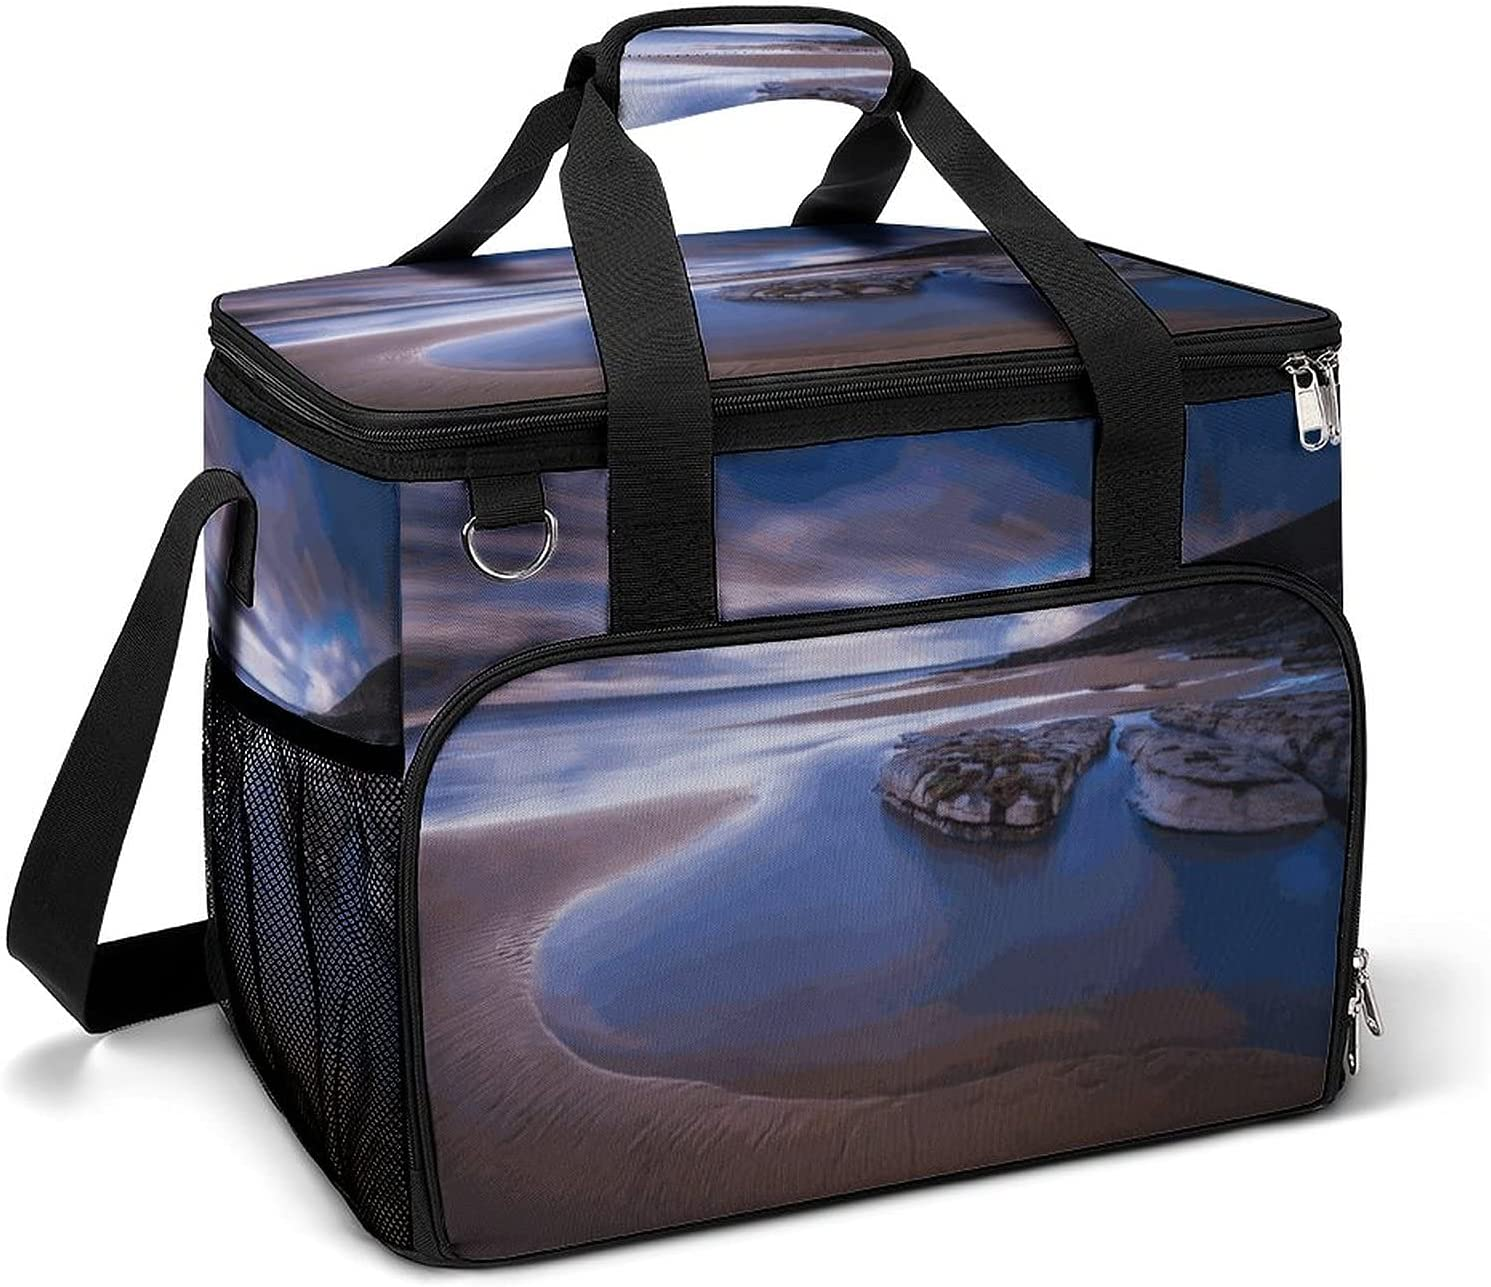 Cooler Ice Bag Beautifully Textured online shopping Rock Portable Custom Pattern Shipping included